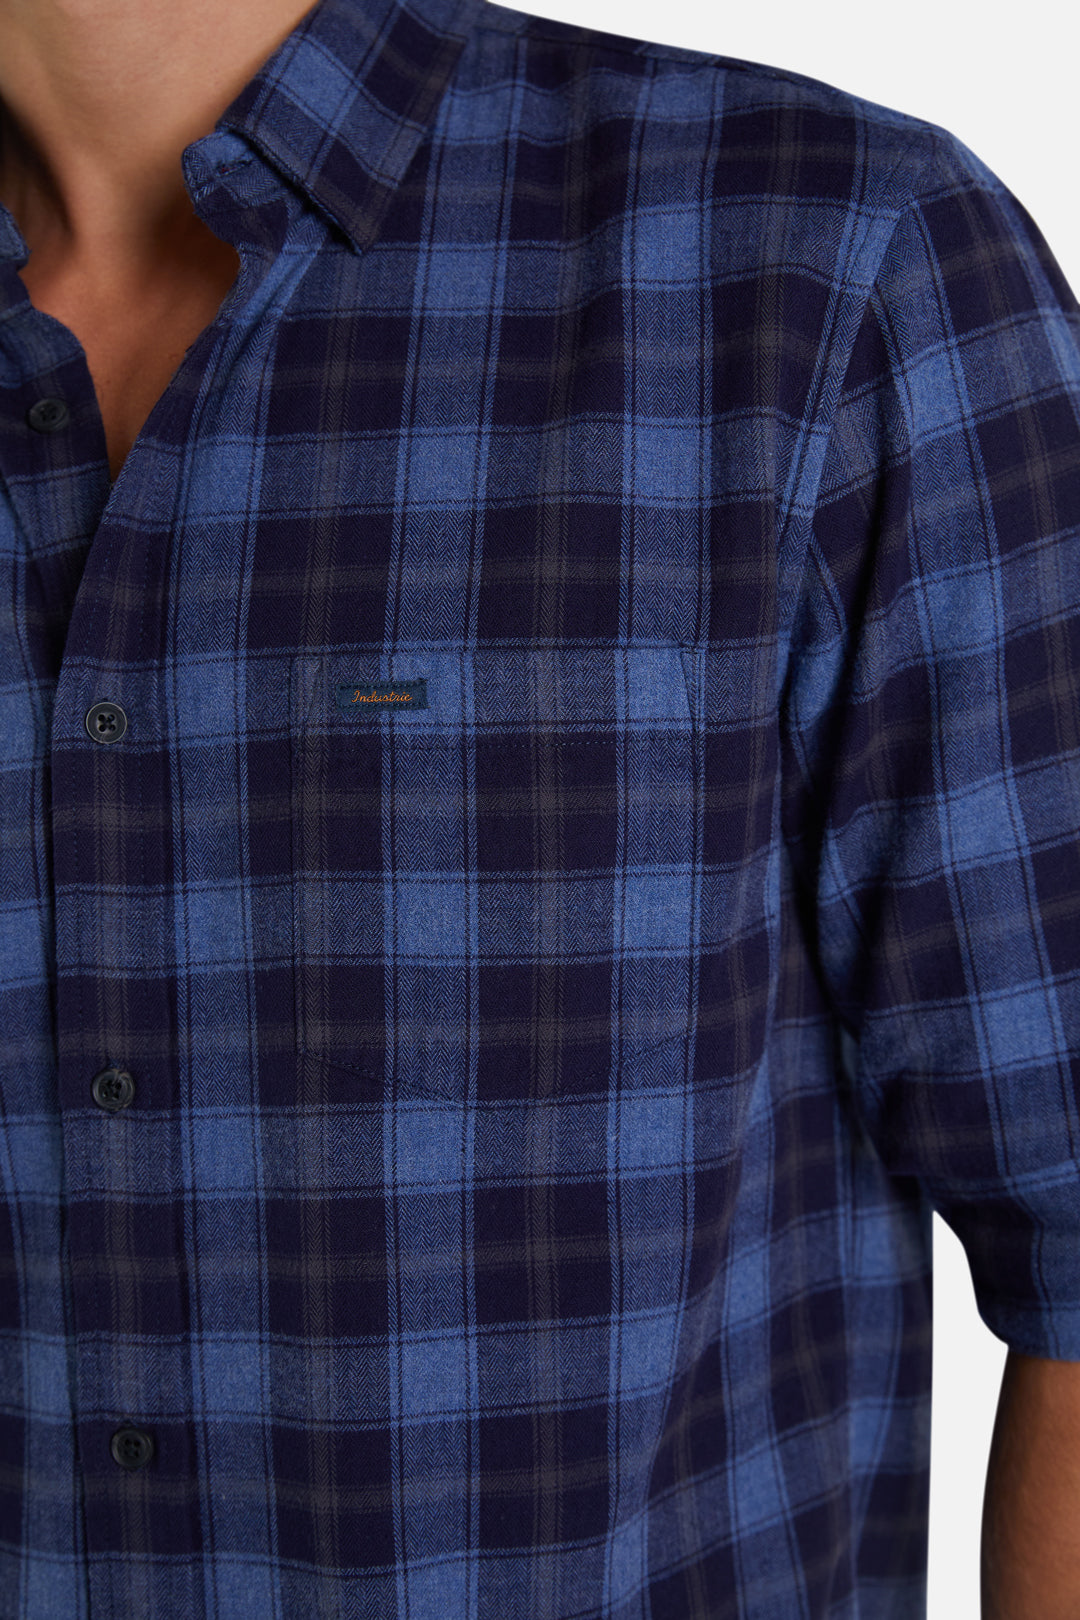 The Kawan L/S Shirt - Navy Blue